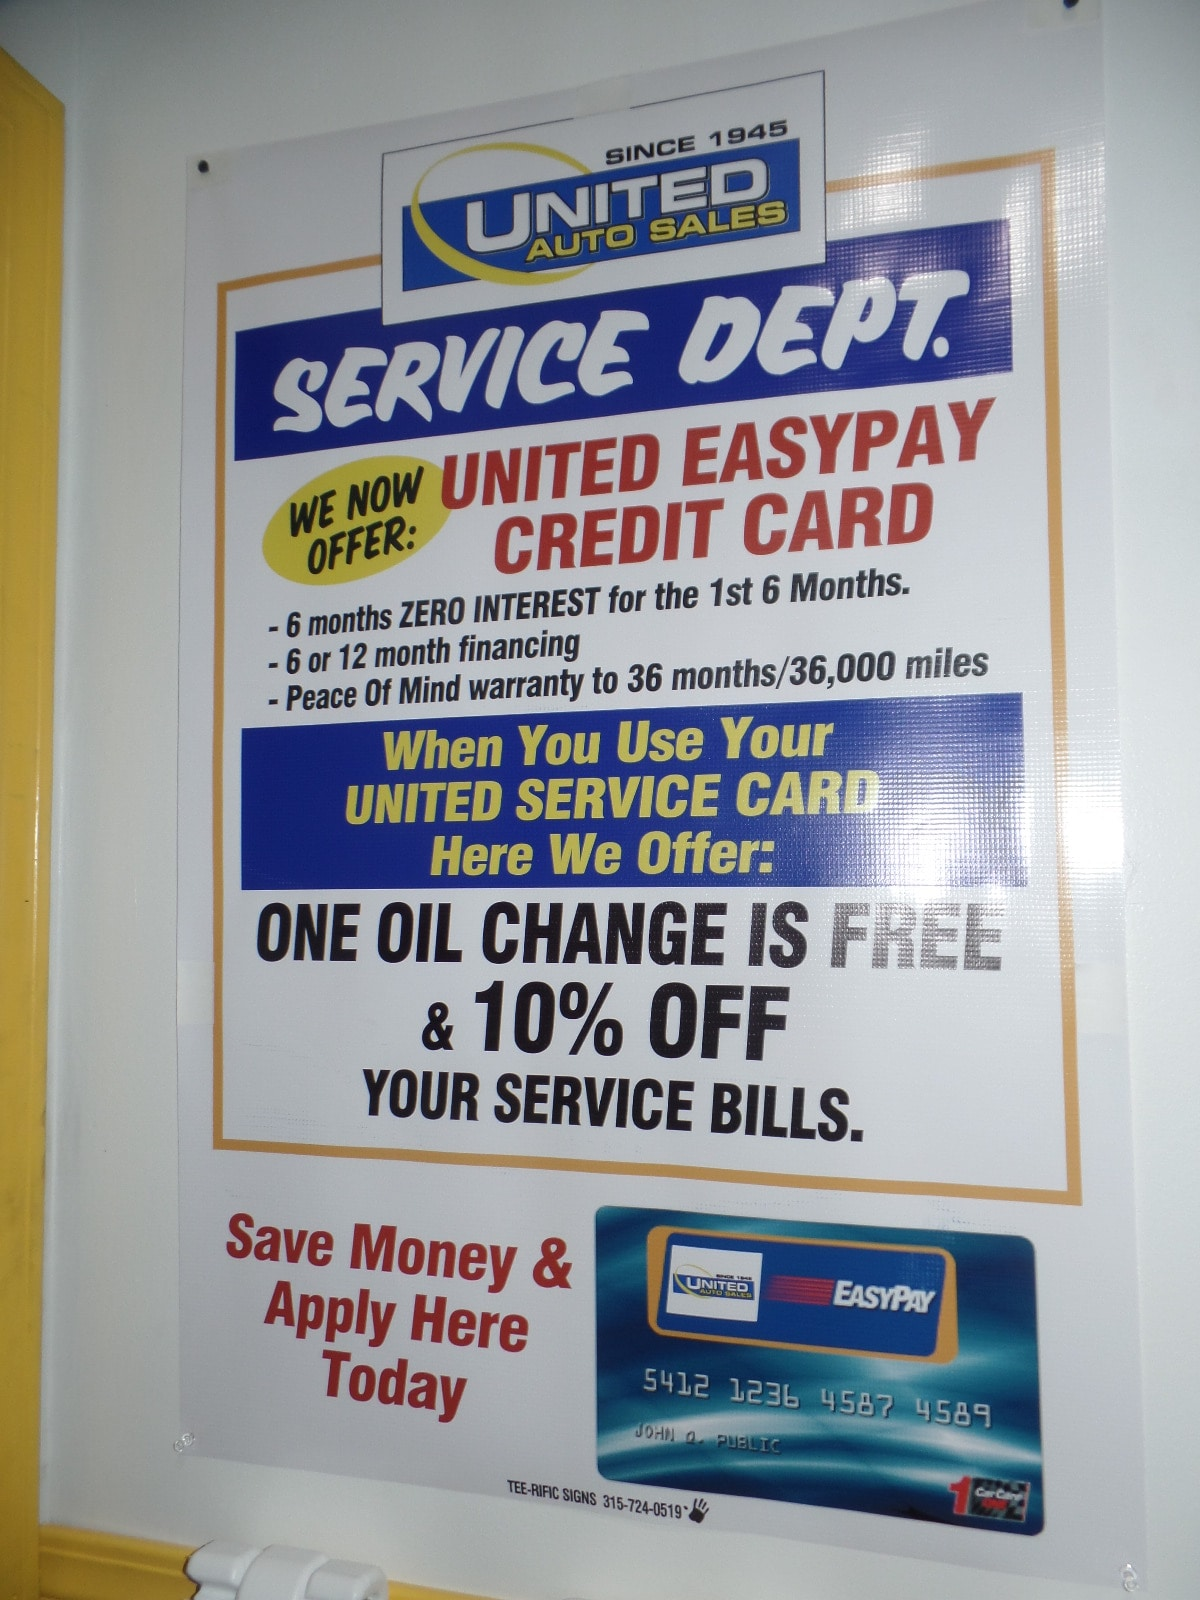 United Credit Card Customer Service United Easy Pay Credit Card United Auto Sales Of Utica